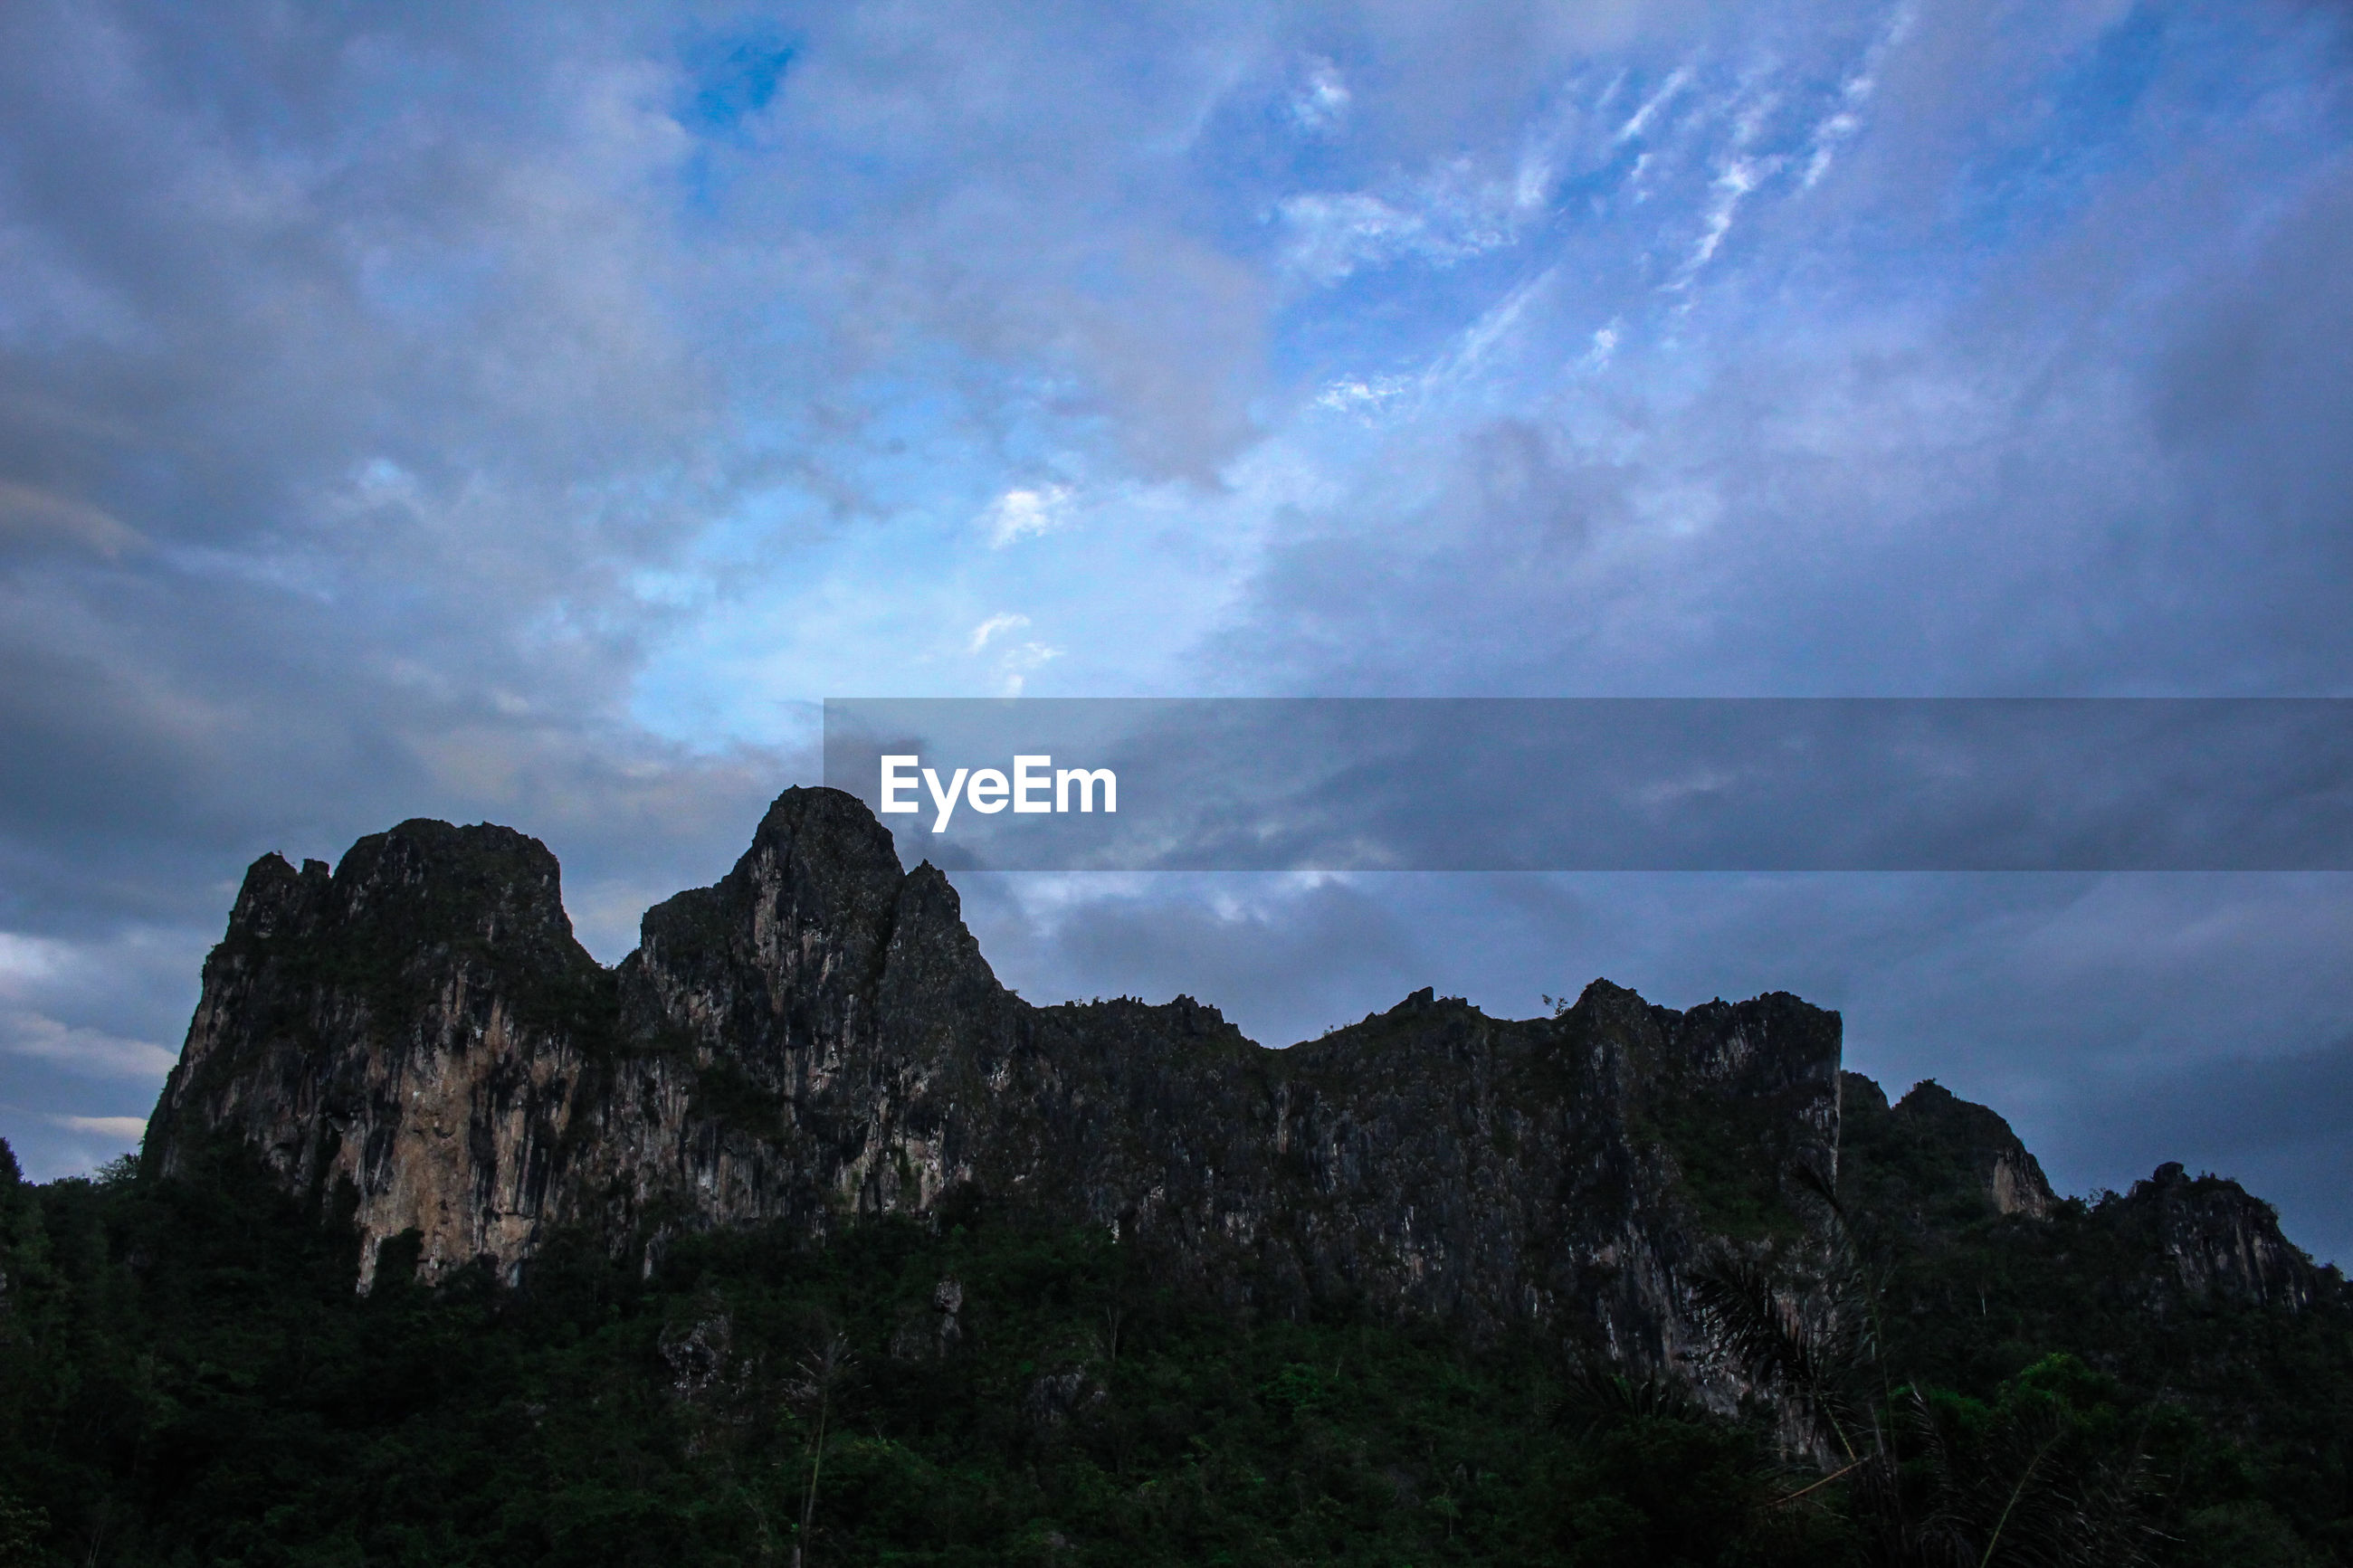 LOW ANGLE VIEW OF ROCKS AGAINST SKY